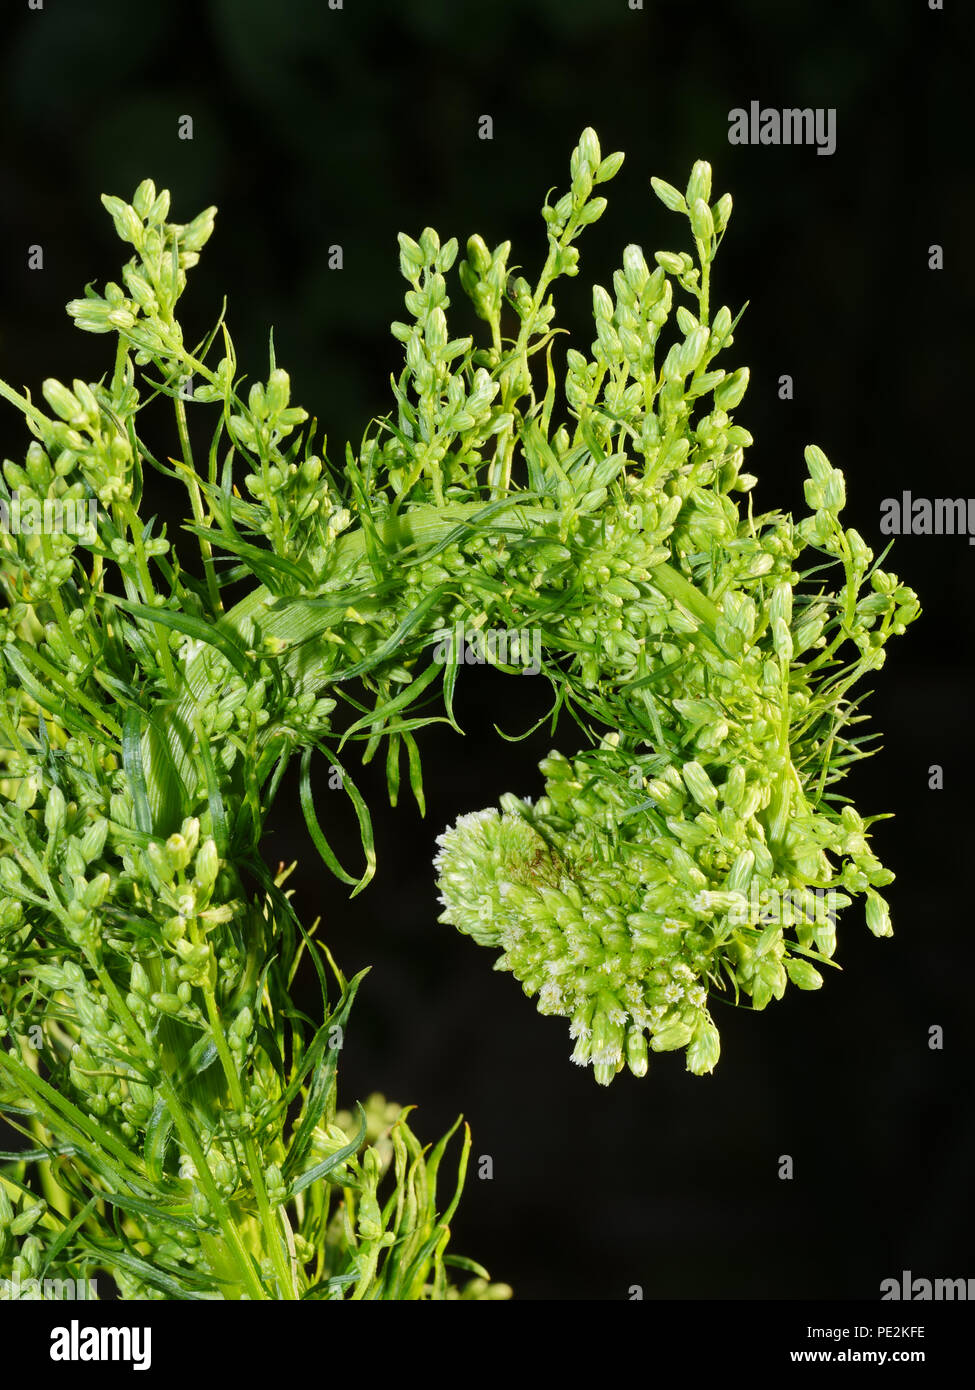 Fasciation on Canadian Fleabane, Conyza canadensis - Stock Image